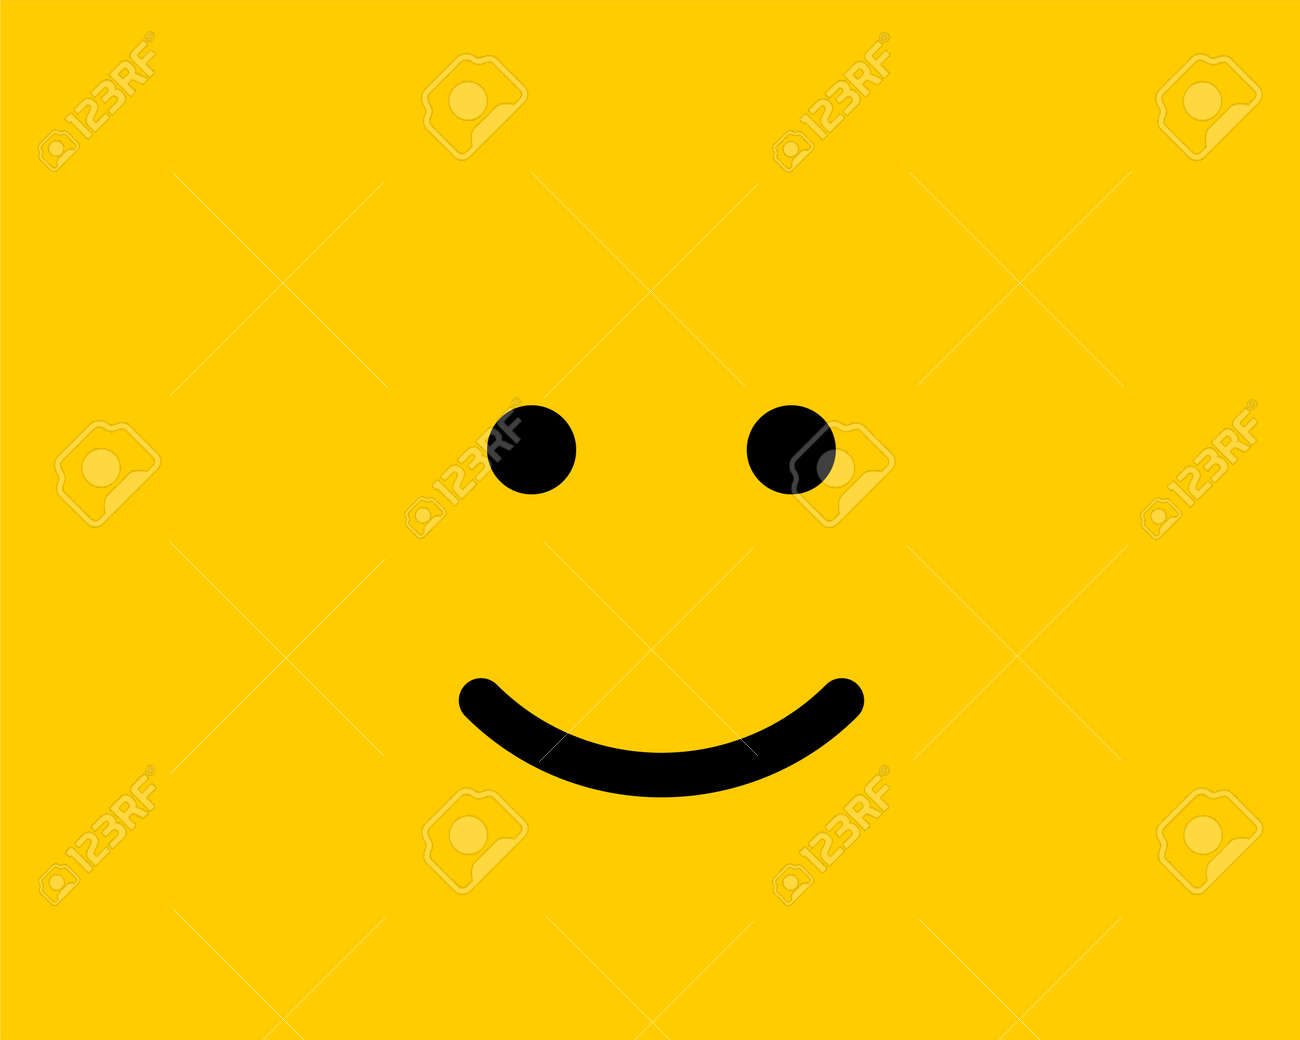 129260370 emoji smile icon vector symbol on yellow background smiley face cartoon character wallpaper